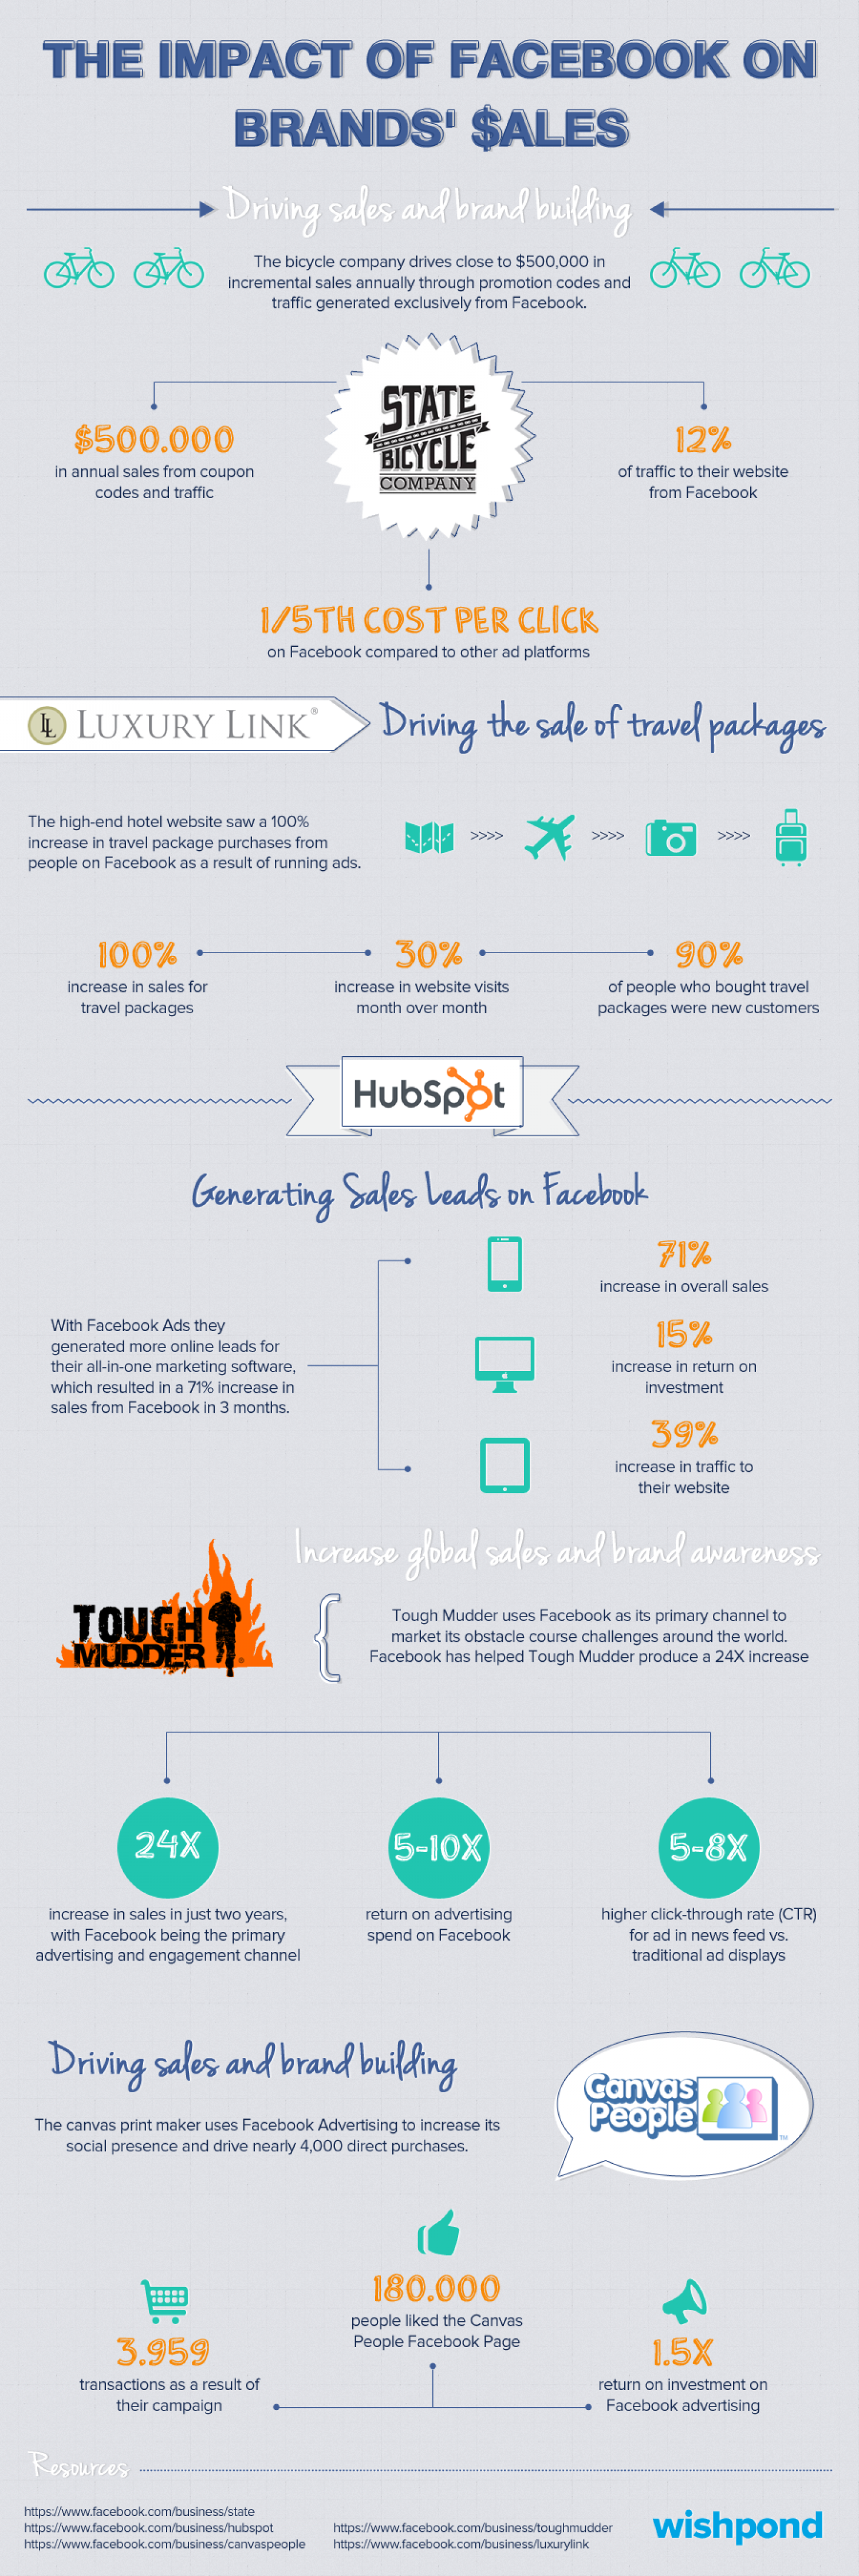 The Impact of Facebook on Brands' Sales Infographic